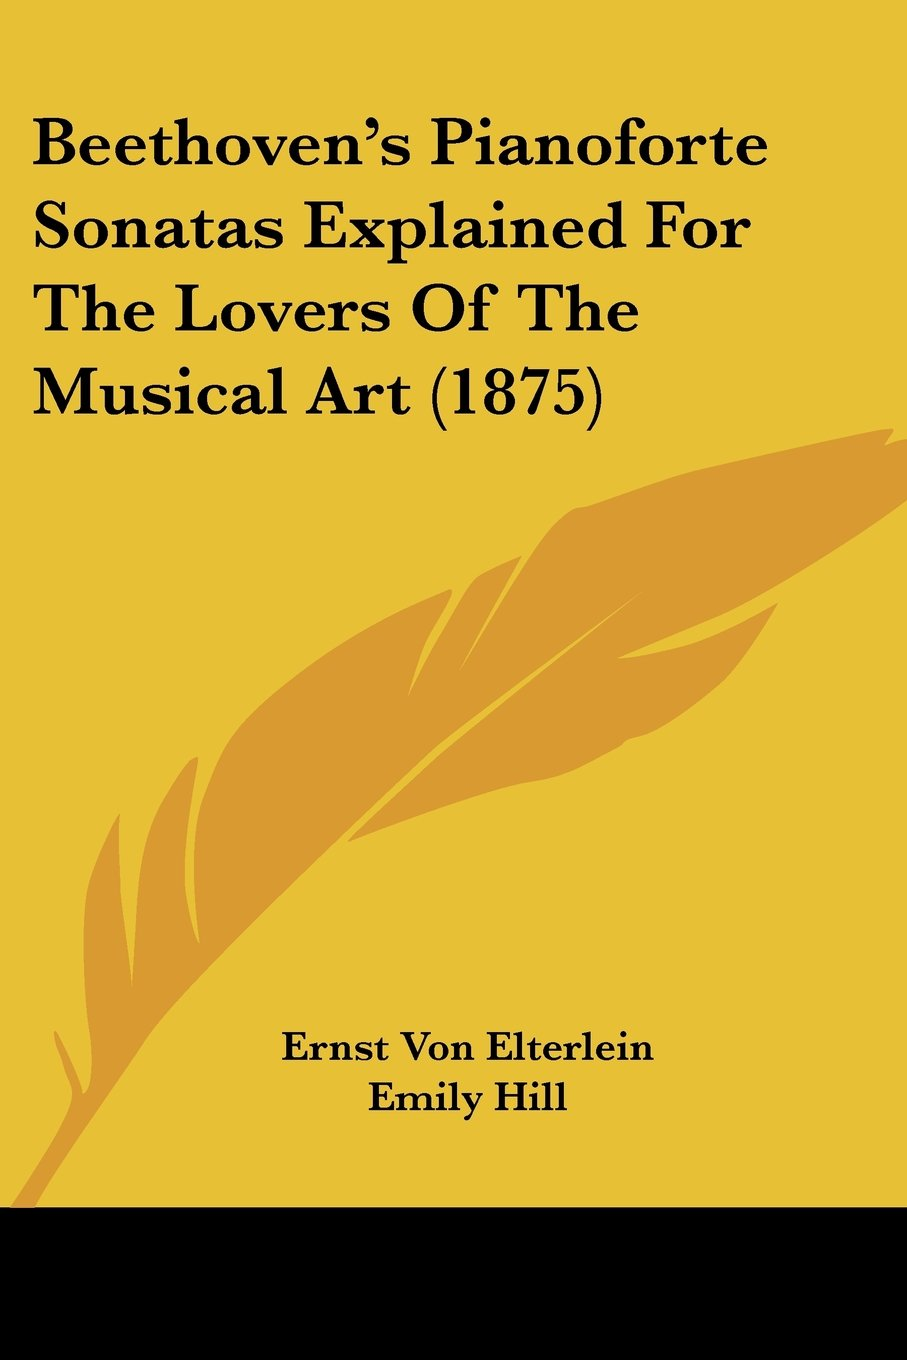 Download Beethoven's Pianoforte Sonatas Explained For The Lovers Of The Musical Art (1875) PDF